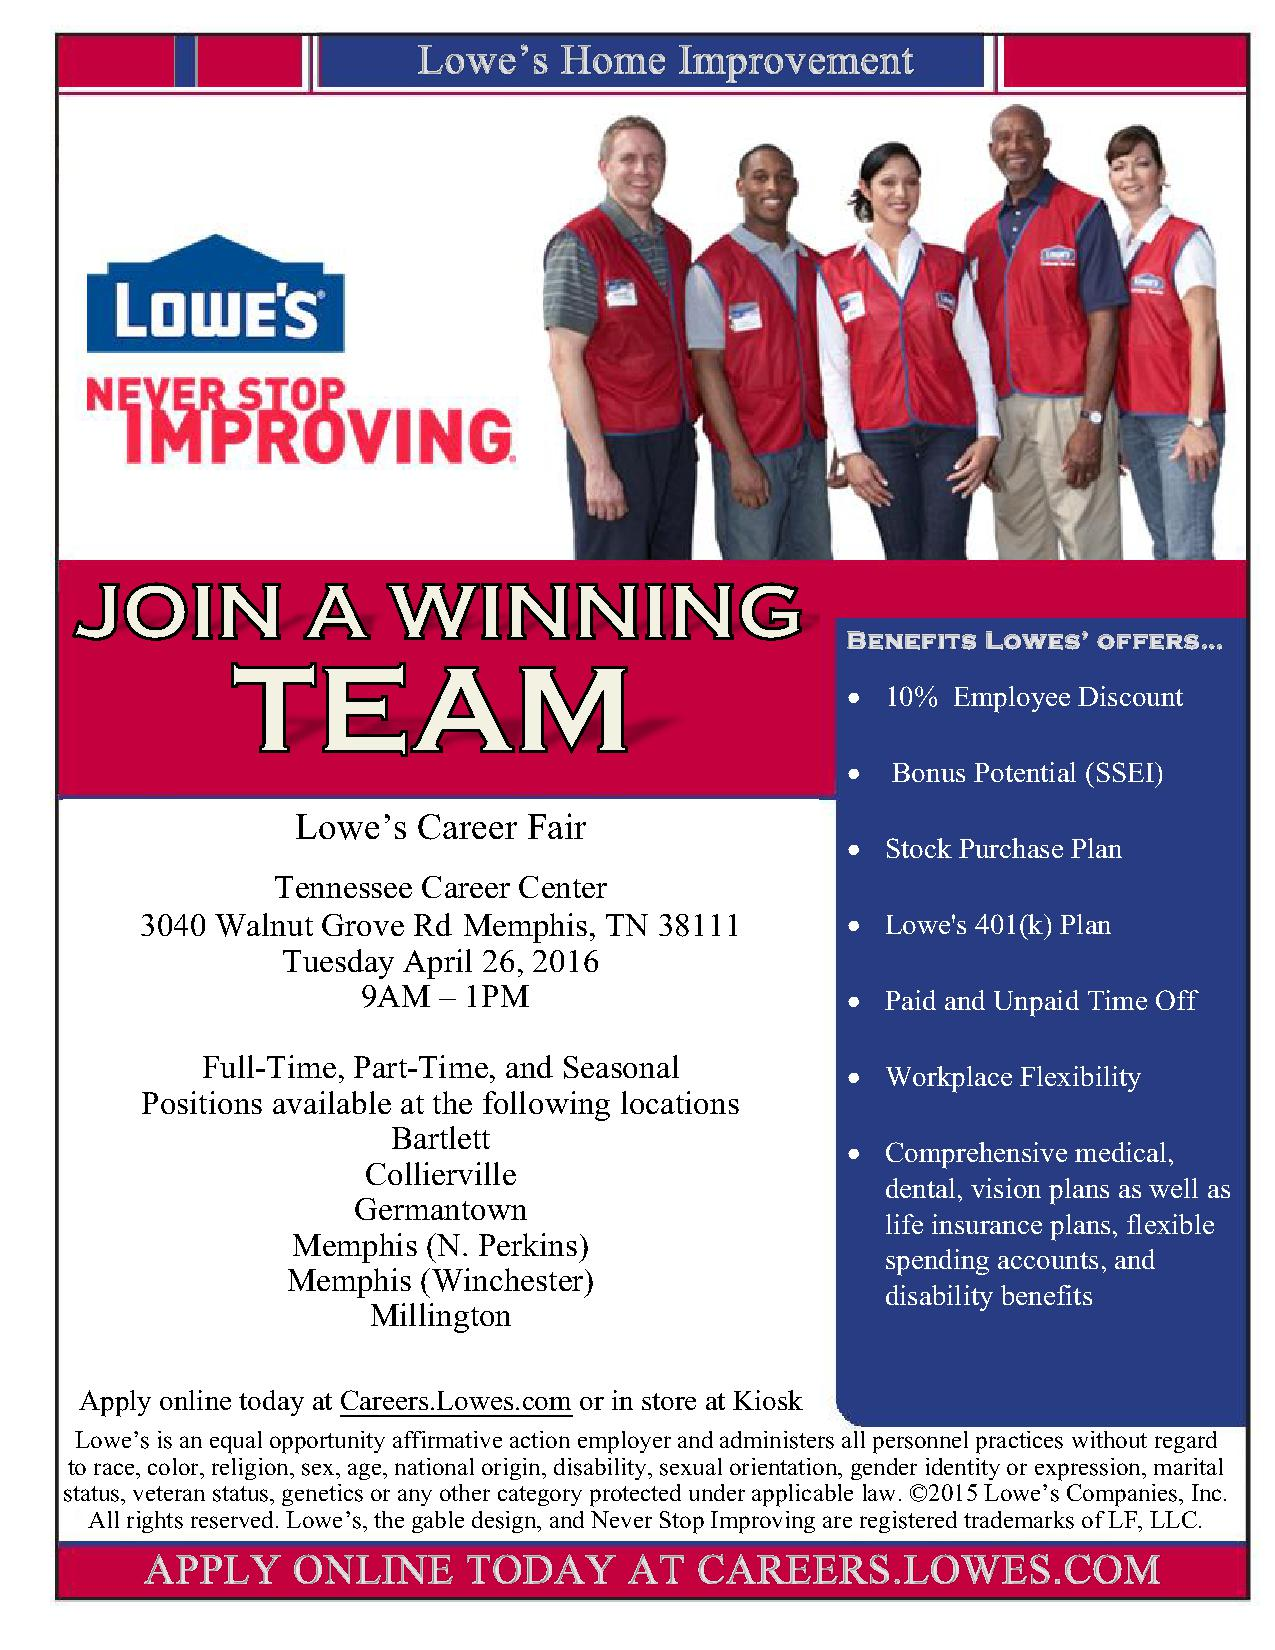 Lowes Job Fair TN Career Center 42616 Job Amp Career News From The Memphis Public Libraries